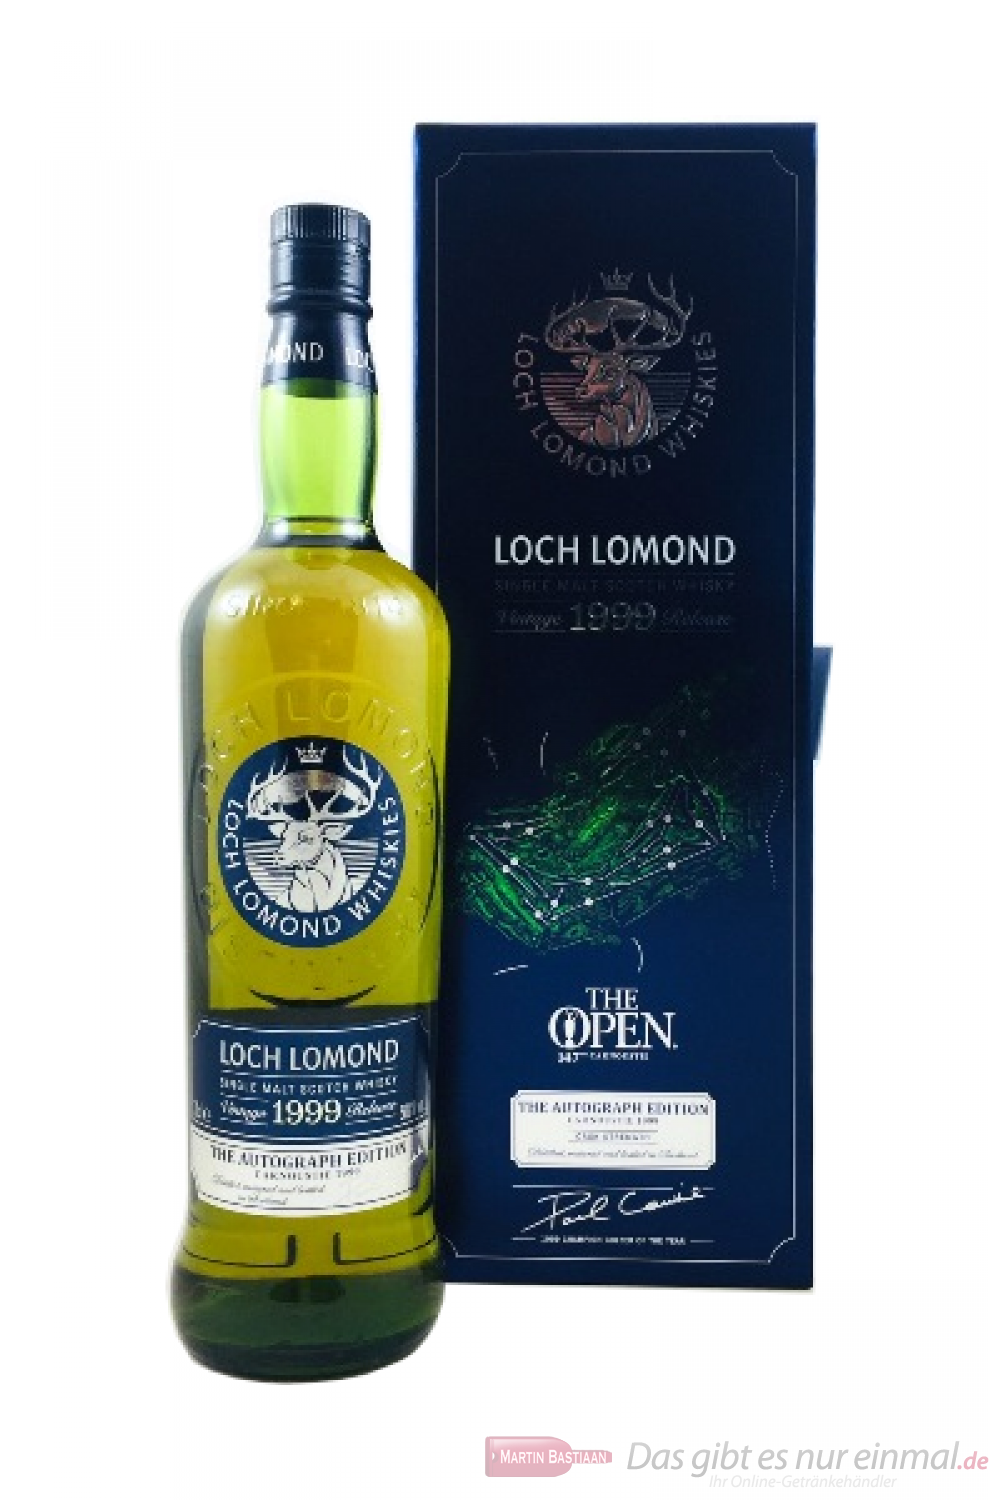 Loch Lomond The Open Course Collection Carnoustie 1999 Whisky 0,7l